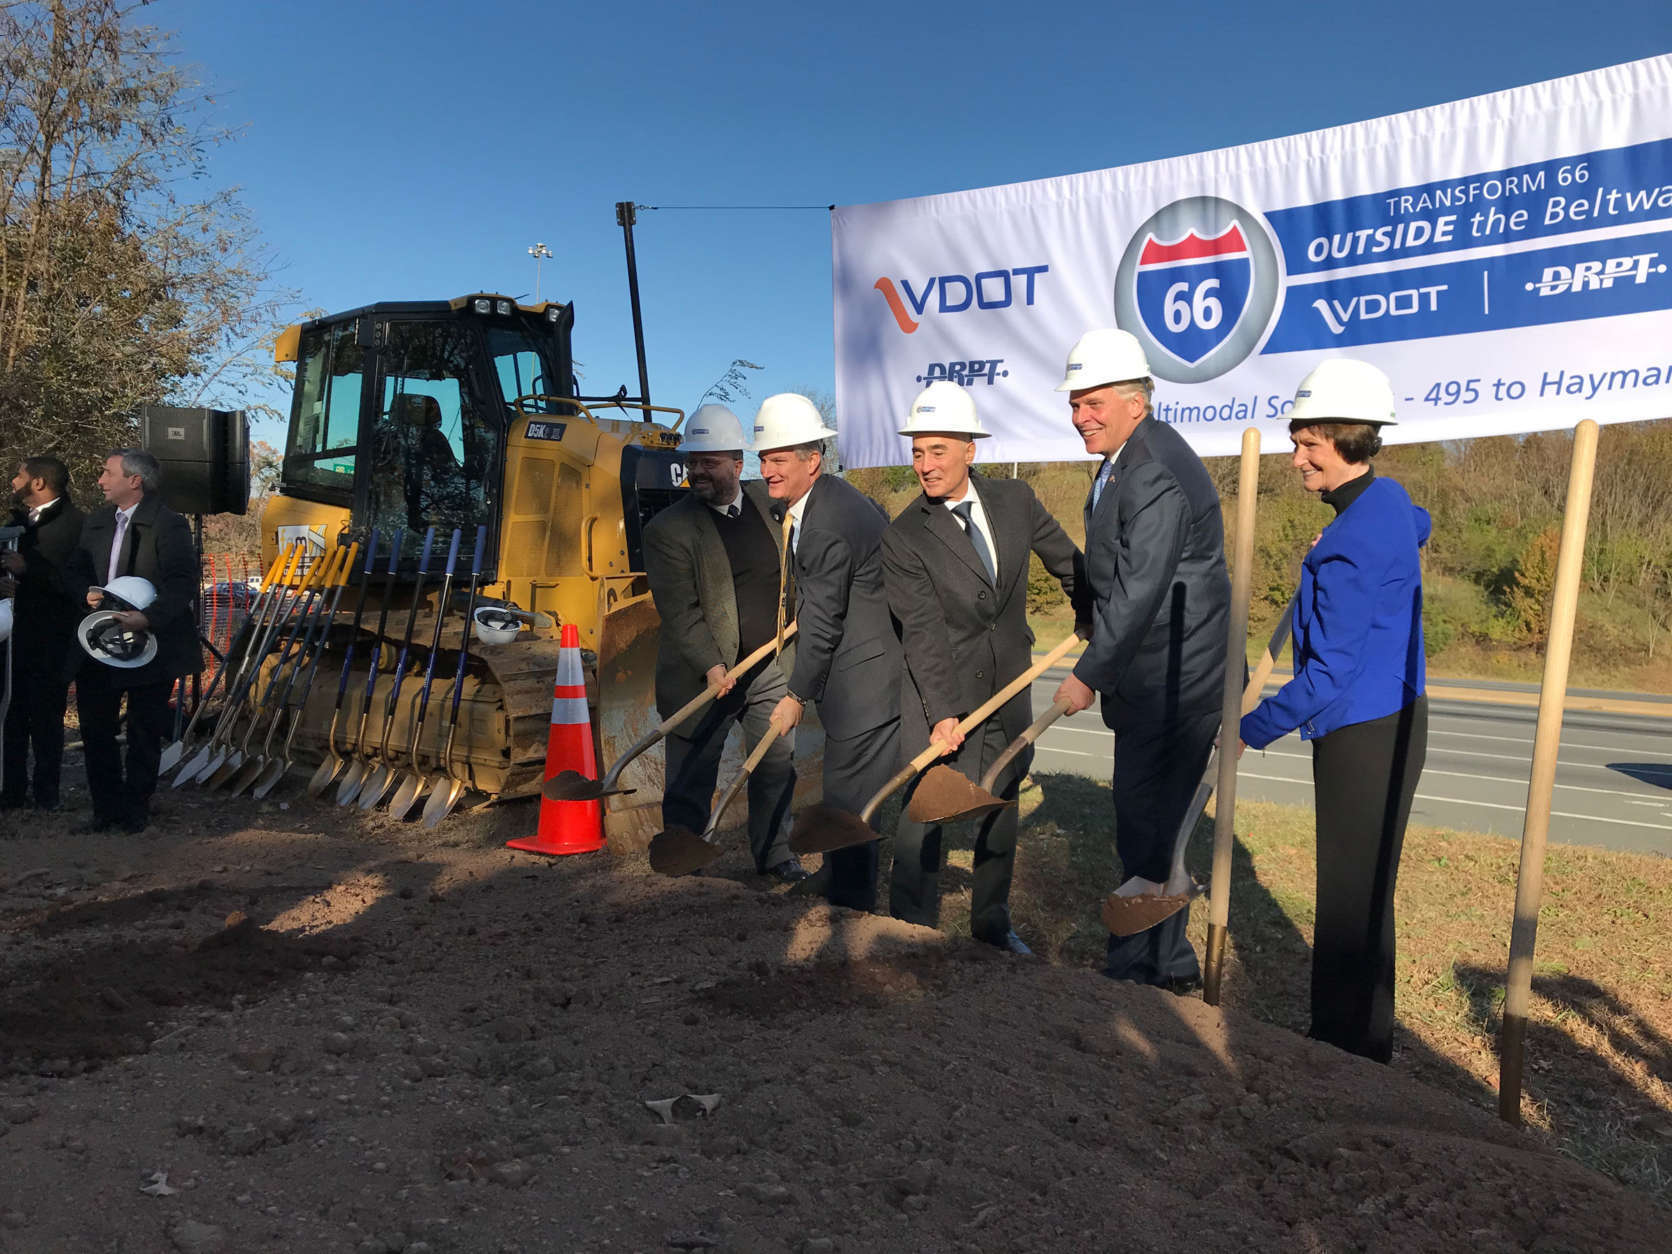 Gov. Terry McAuliffe is among the dignitaries at Monday's groundbreaking. (WTOP/Dick Uliano)